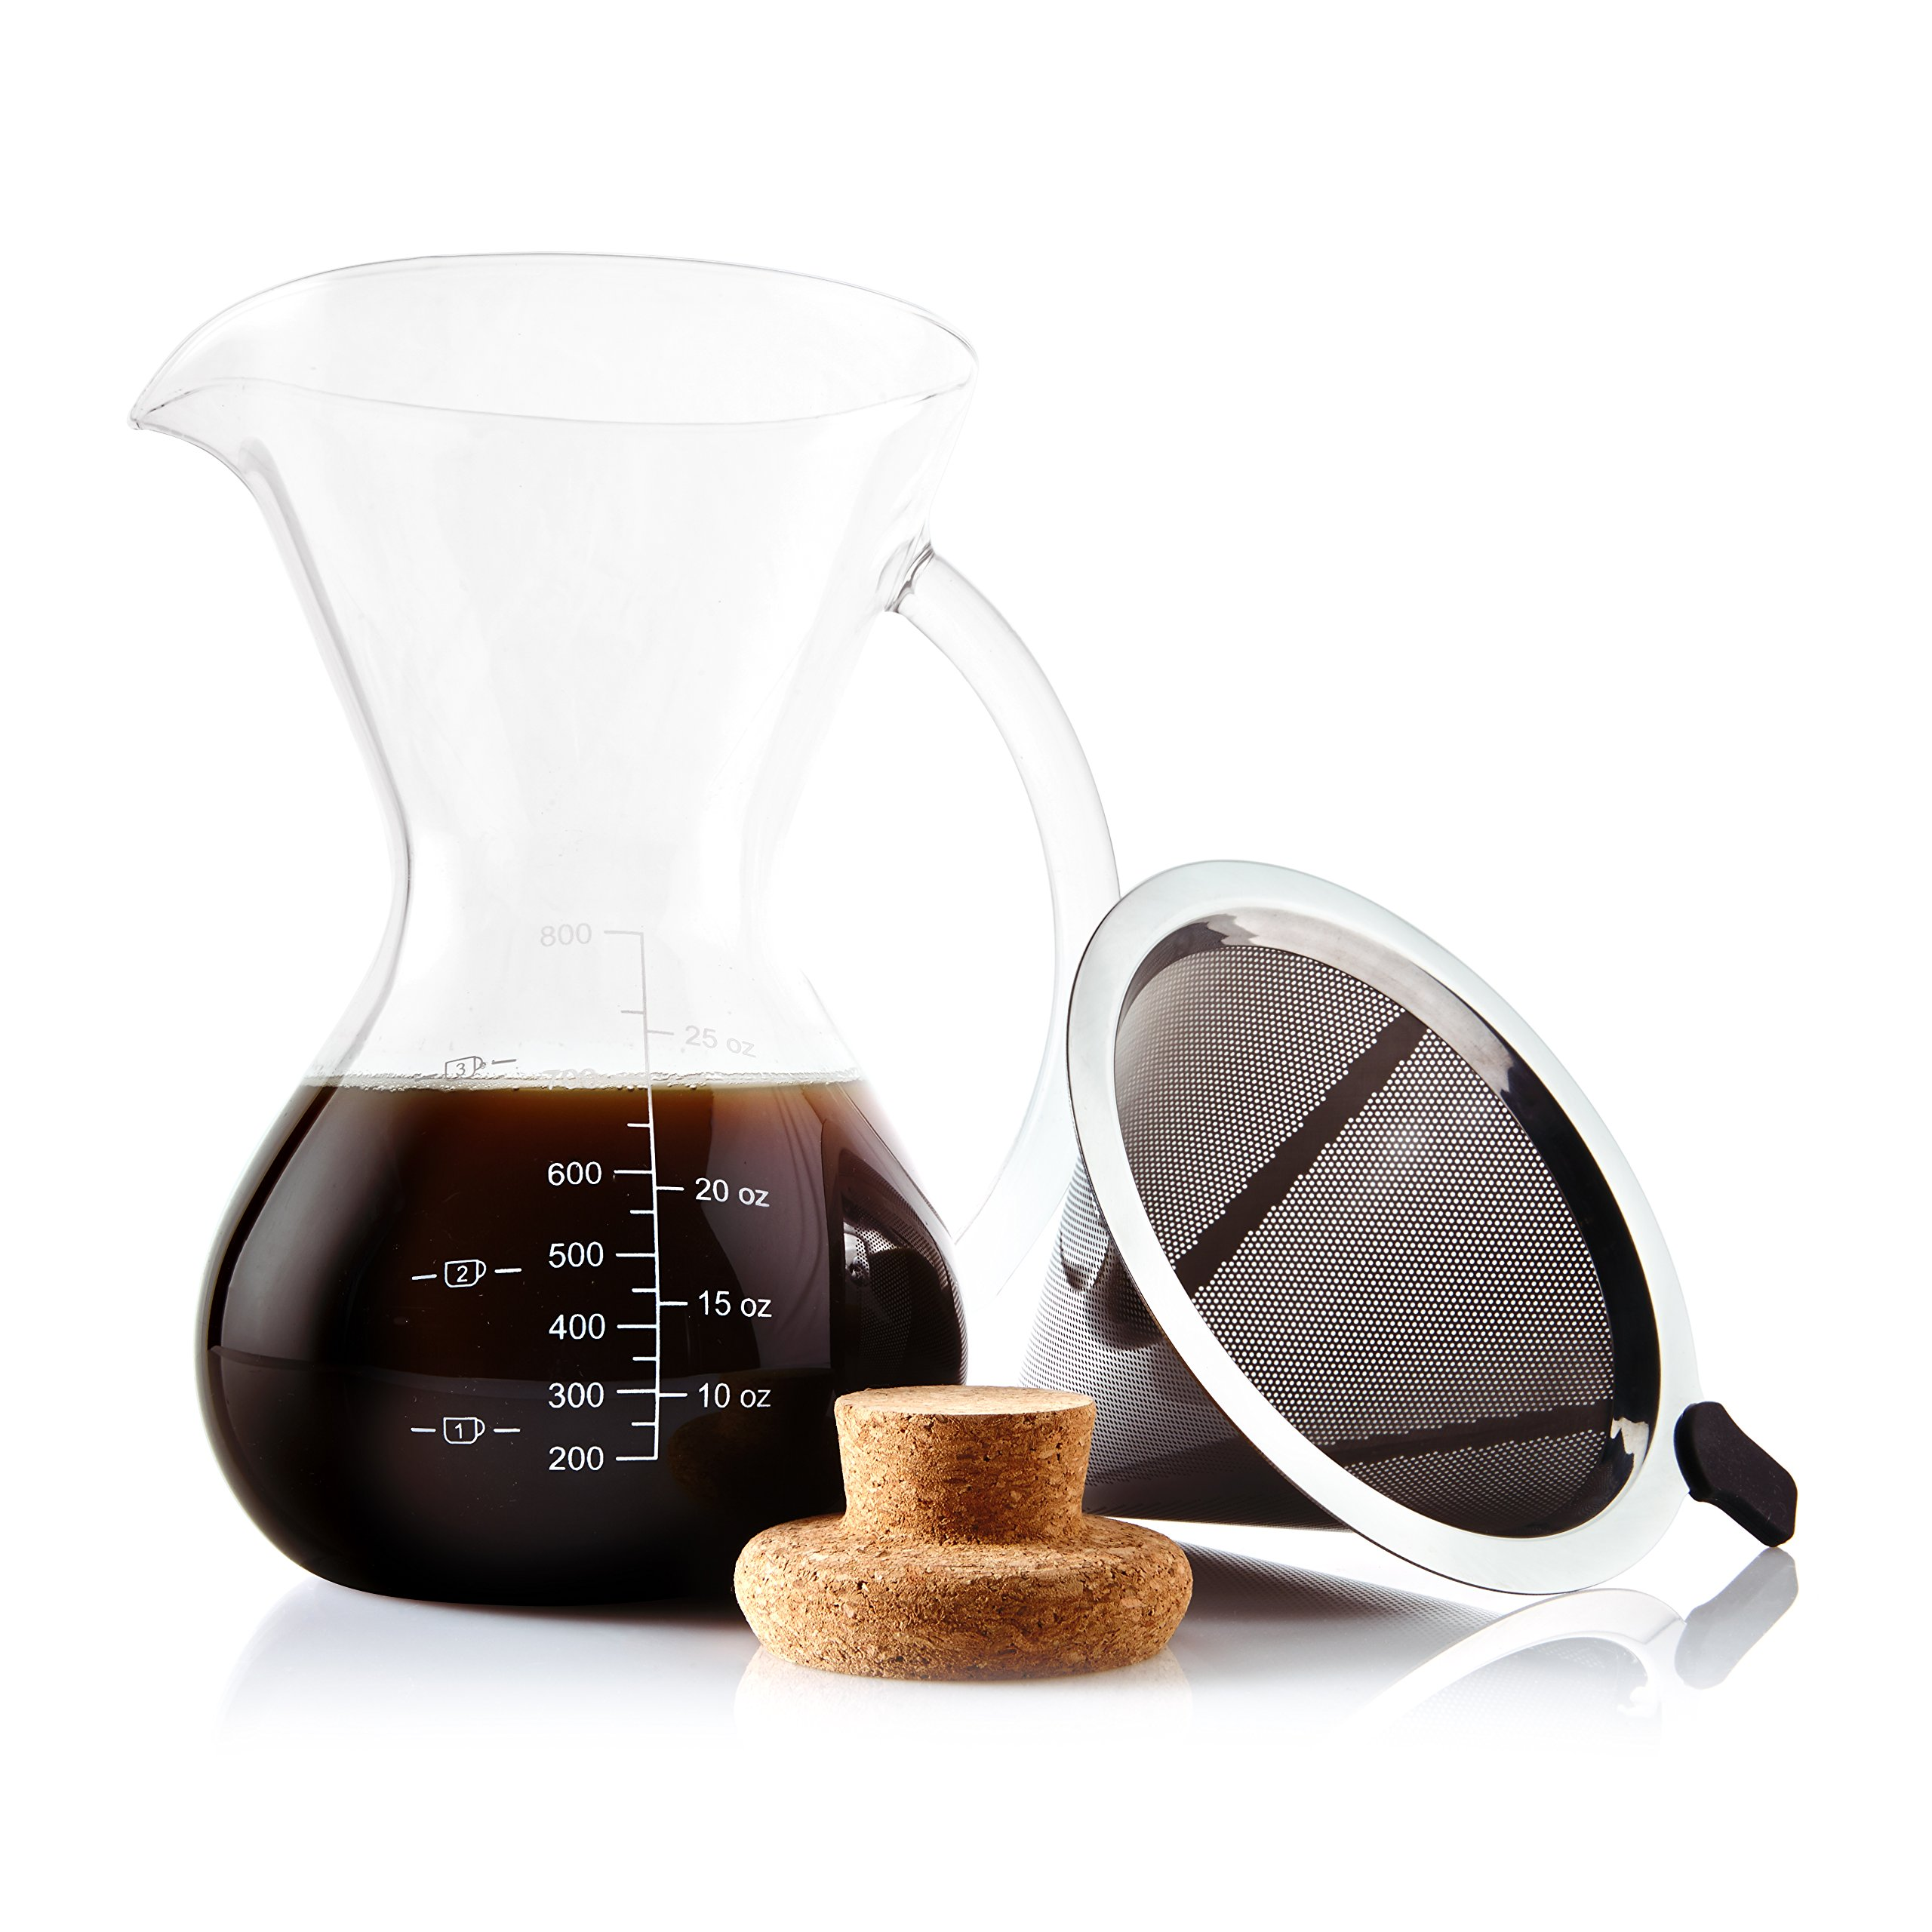 Apace Living Pour Over Coffee Maker Set w/Coffee Scoop and Cork Lid - Elegant Coffee Dripper Pot w/Glass Carafe & Permanent Stainless Steel Filter (800 ml/27 oz)